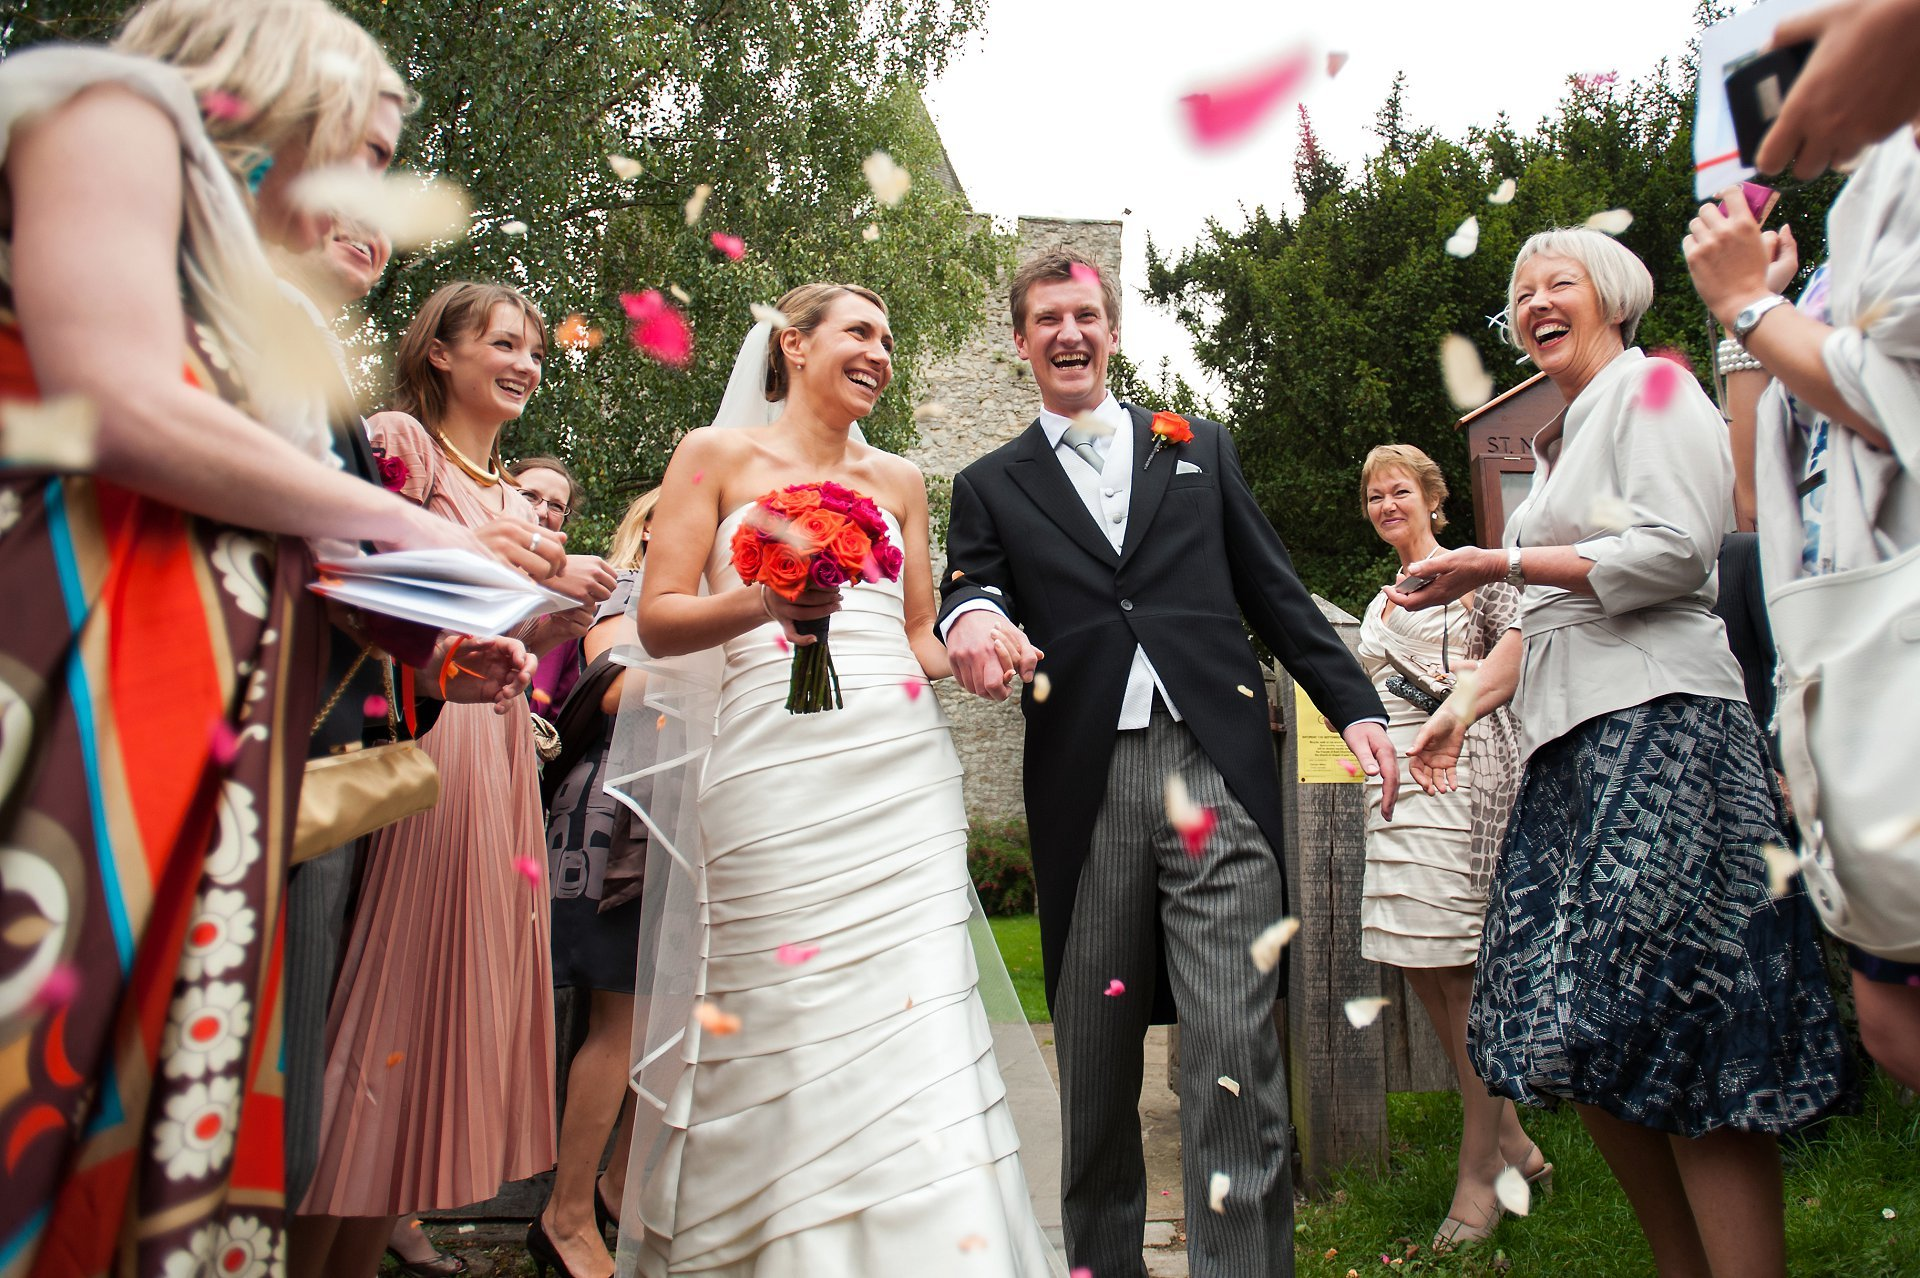 Leeds Castle Autumn Wedding photographer by Leeds Castle wedding photographer Emma Duggan - here the happy couple are leaving St Nicholas Church in Leeds Village with close friends and family throwing confetti